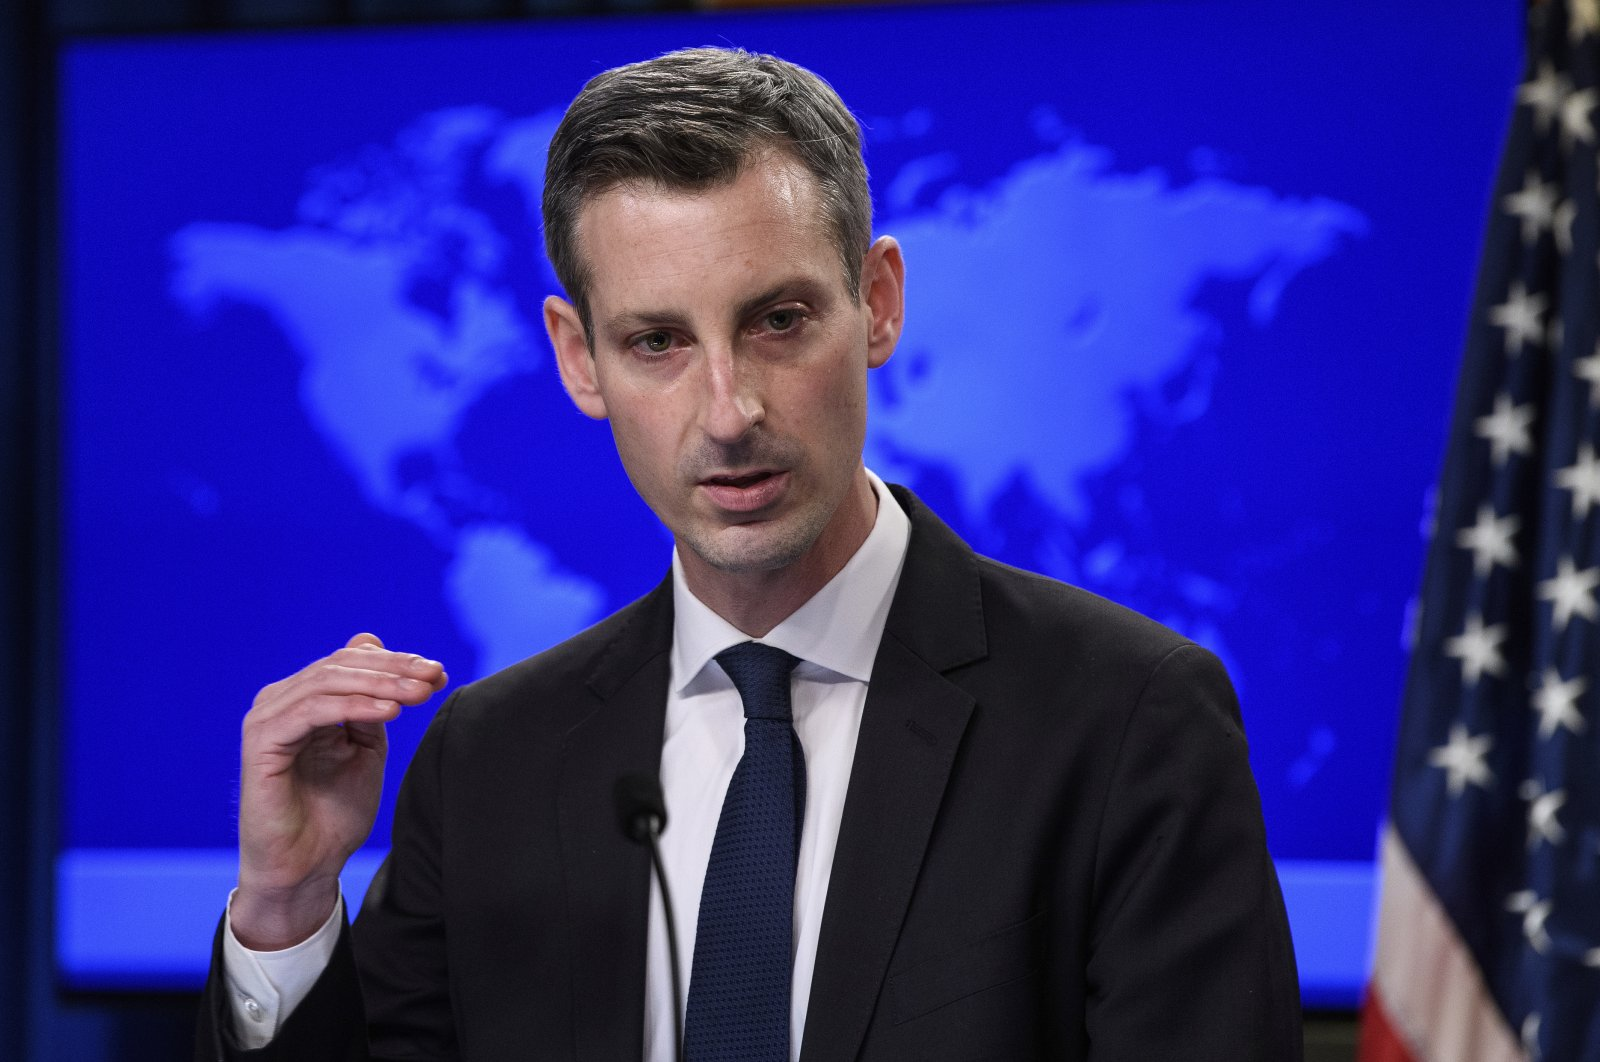 U.S. State Department spokesperson Ned Price speaks during a press briefing in Washington, D.C., the U.S., Feb. 2, 2021. (AP Photo)